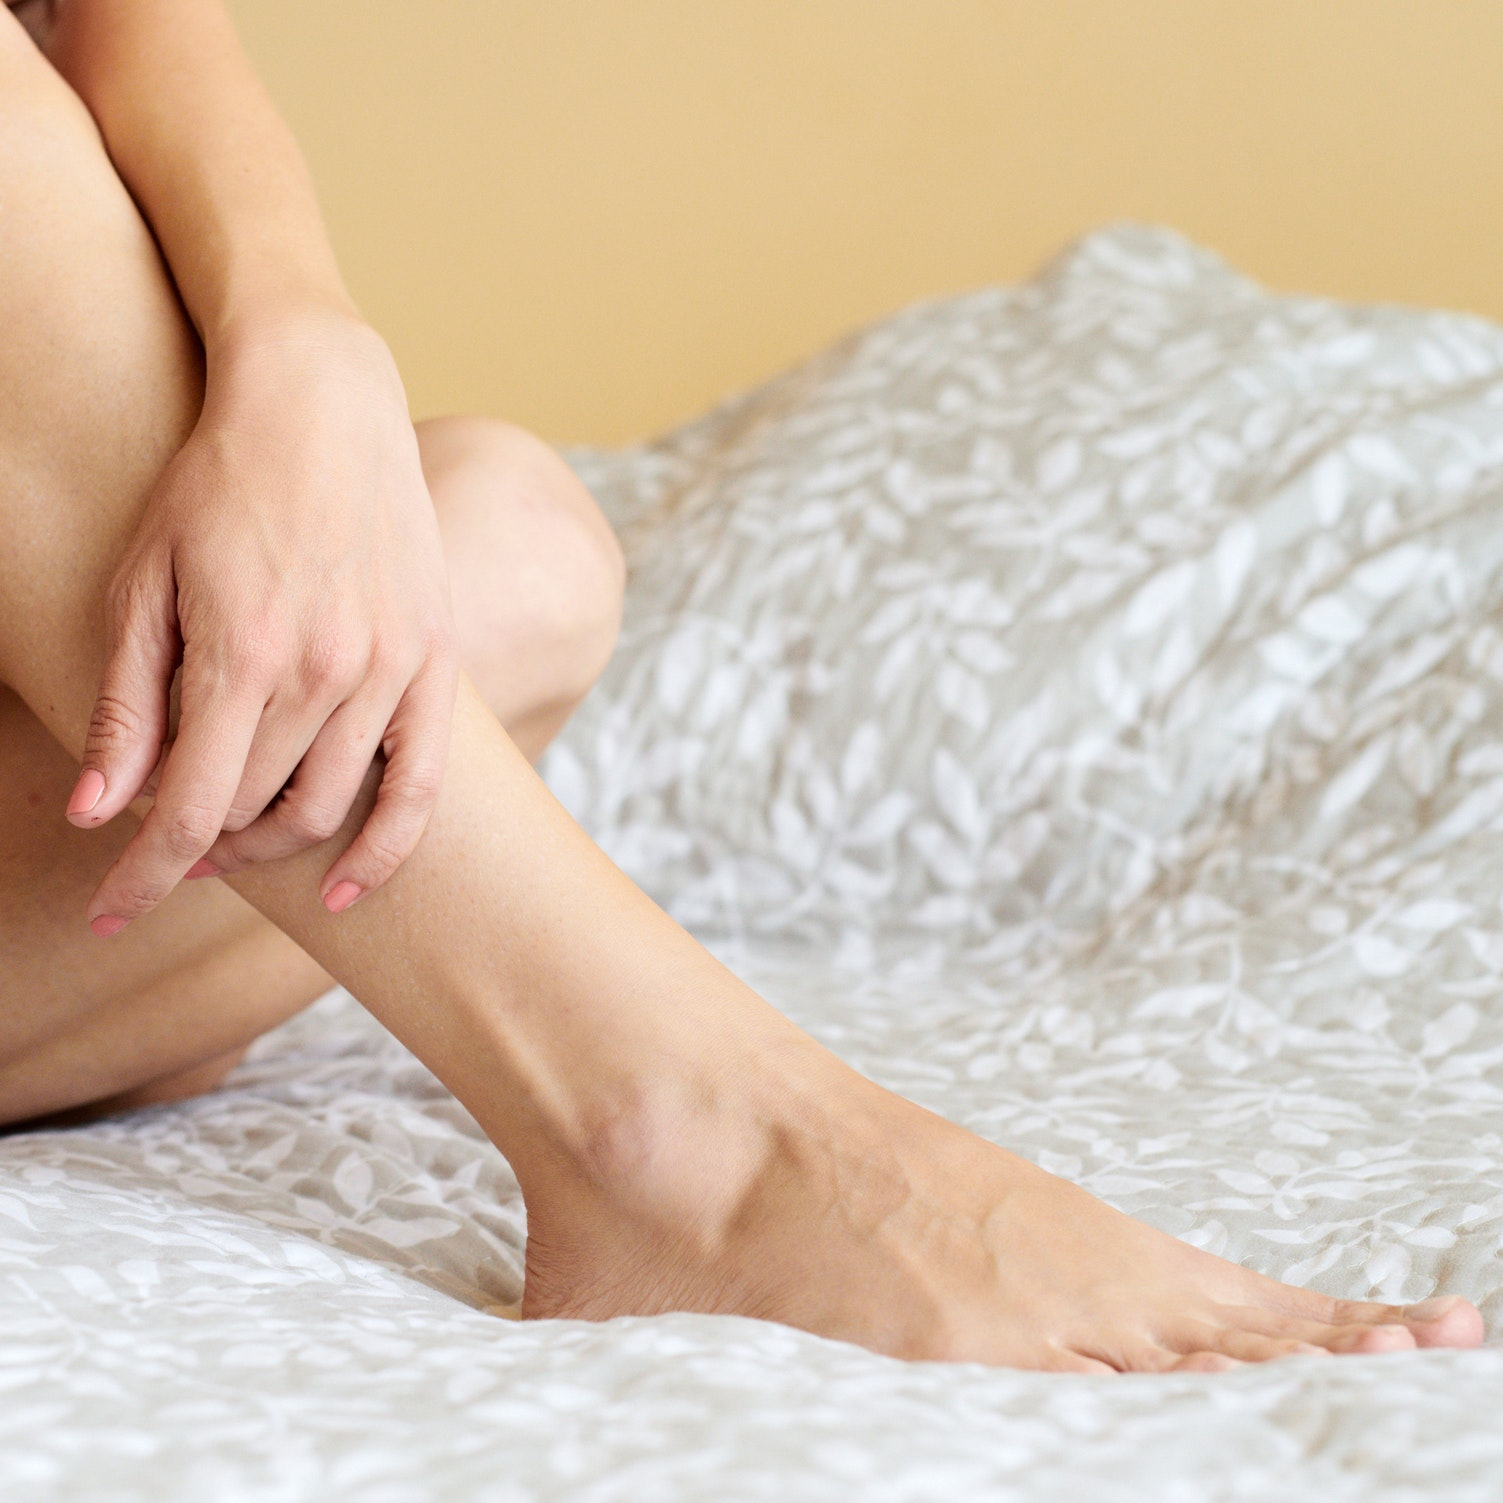 Foot Peels Are the Easiest Way to Get Softer Feet at Home